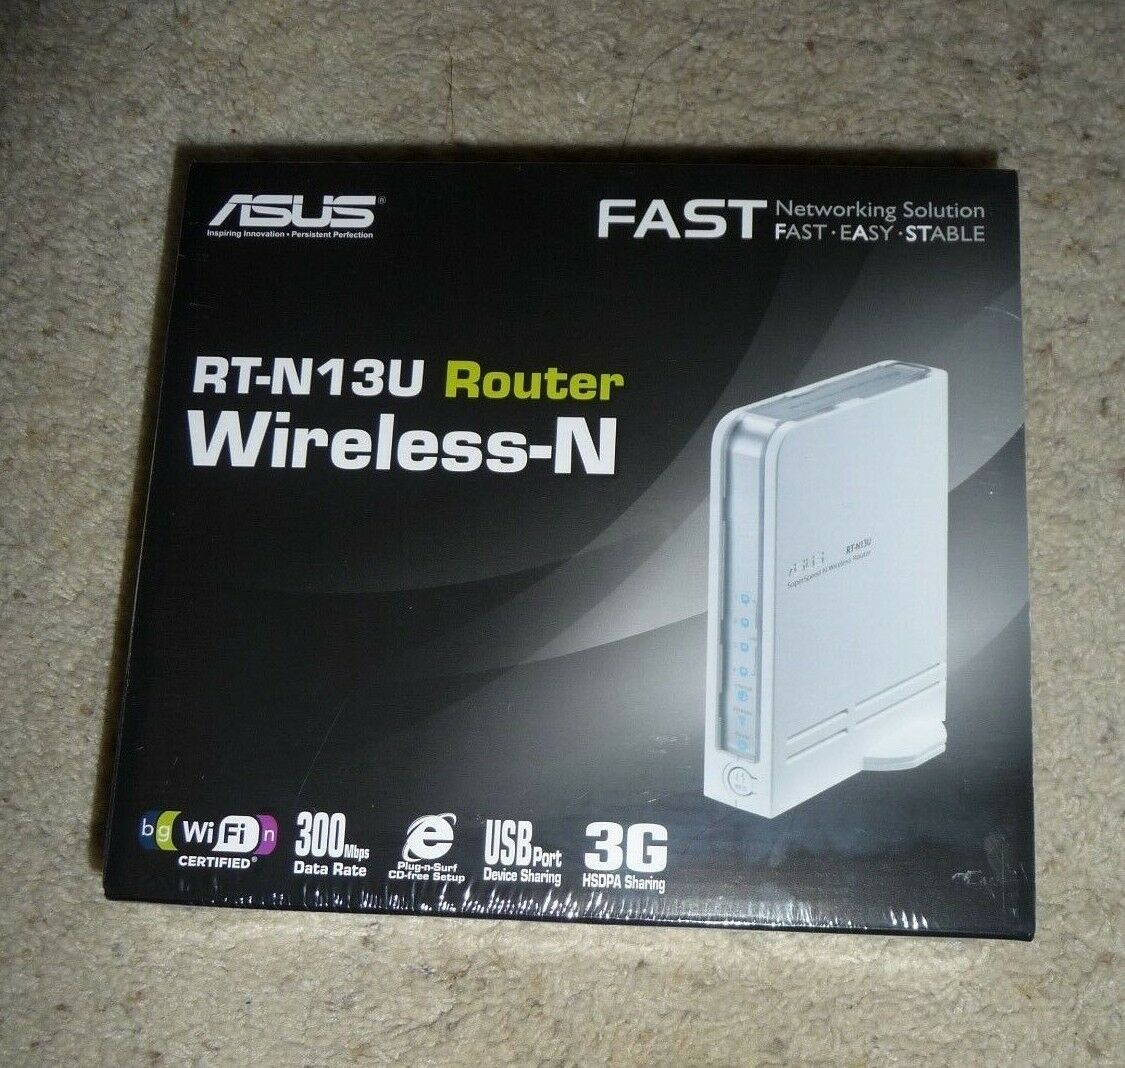 ASUS RT-N13U B1 ROUTER DRIVER UPDATE